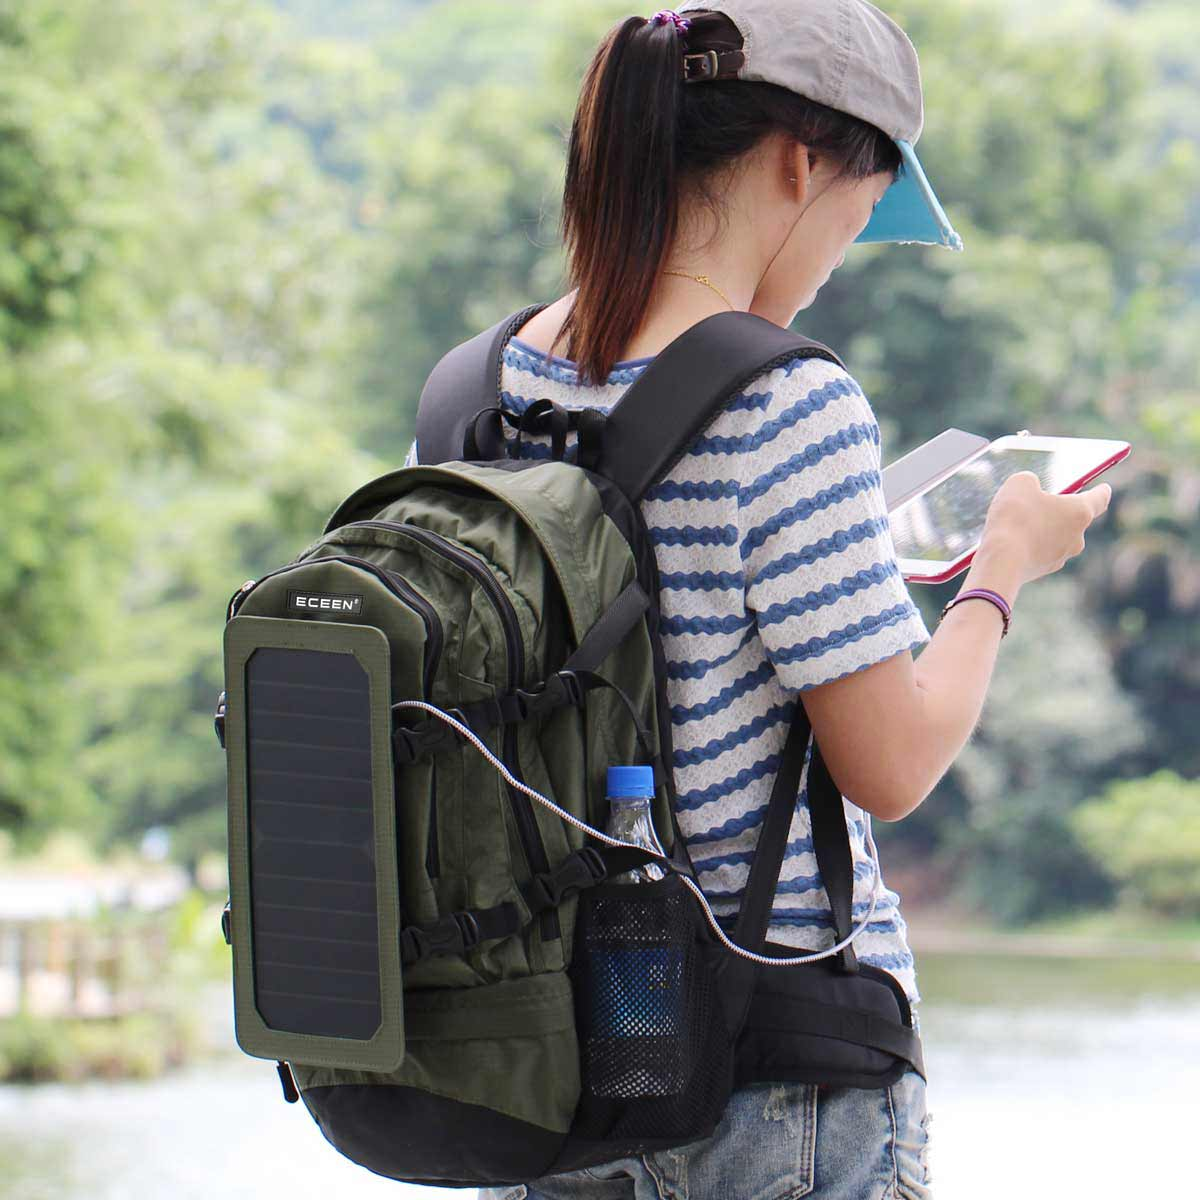 smart backpack in use